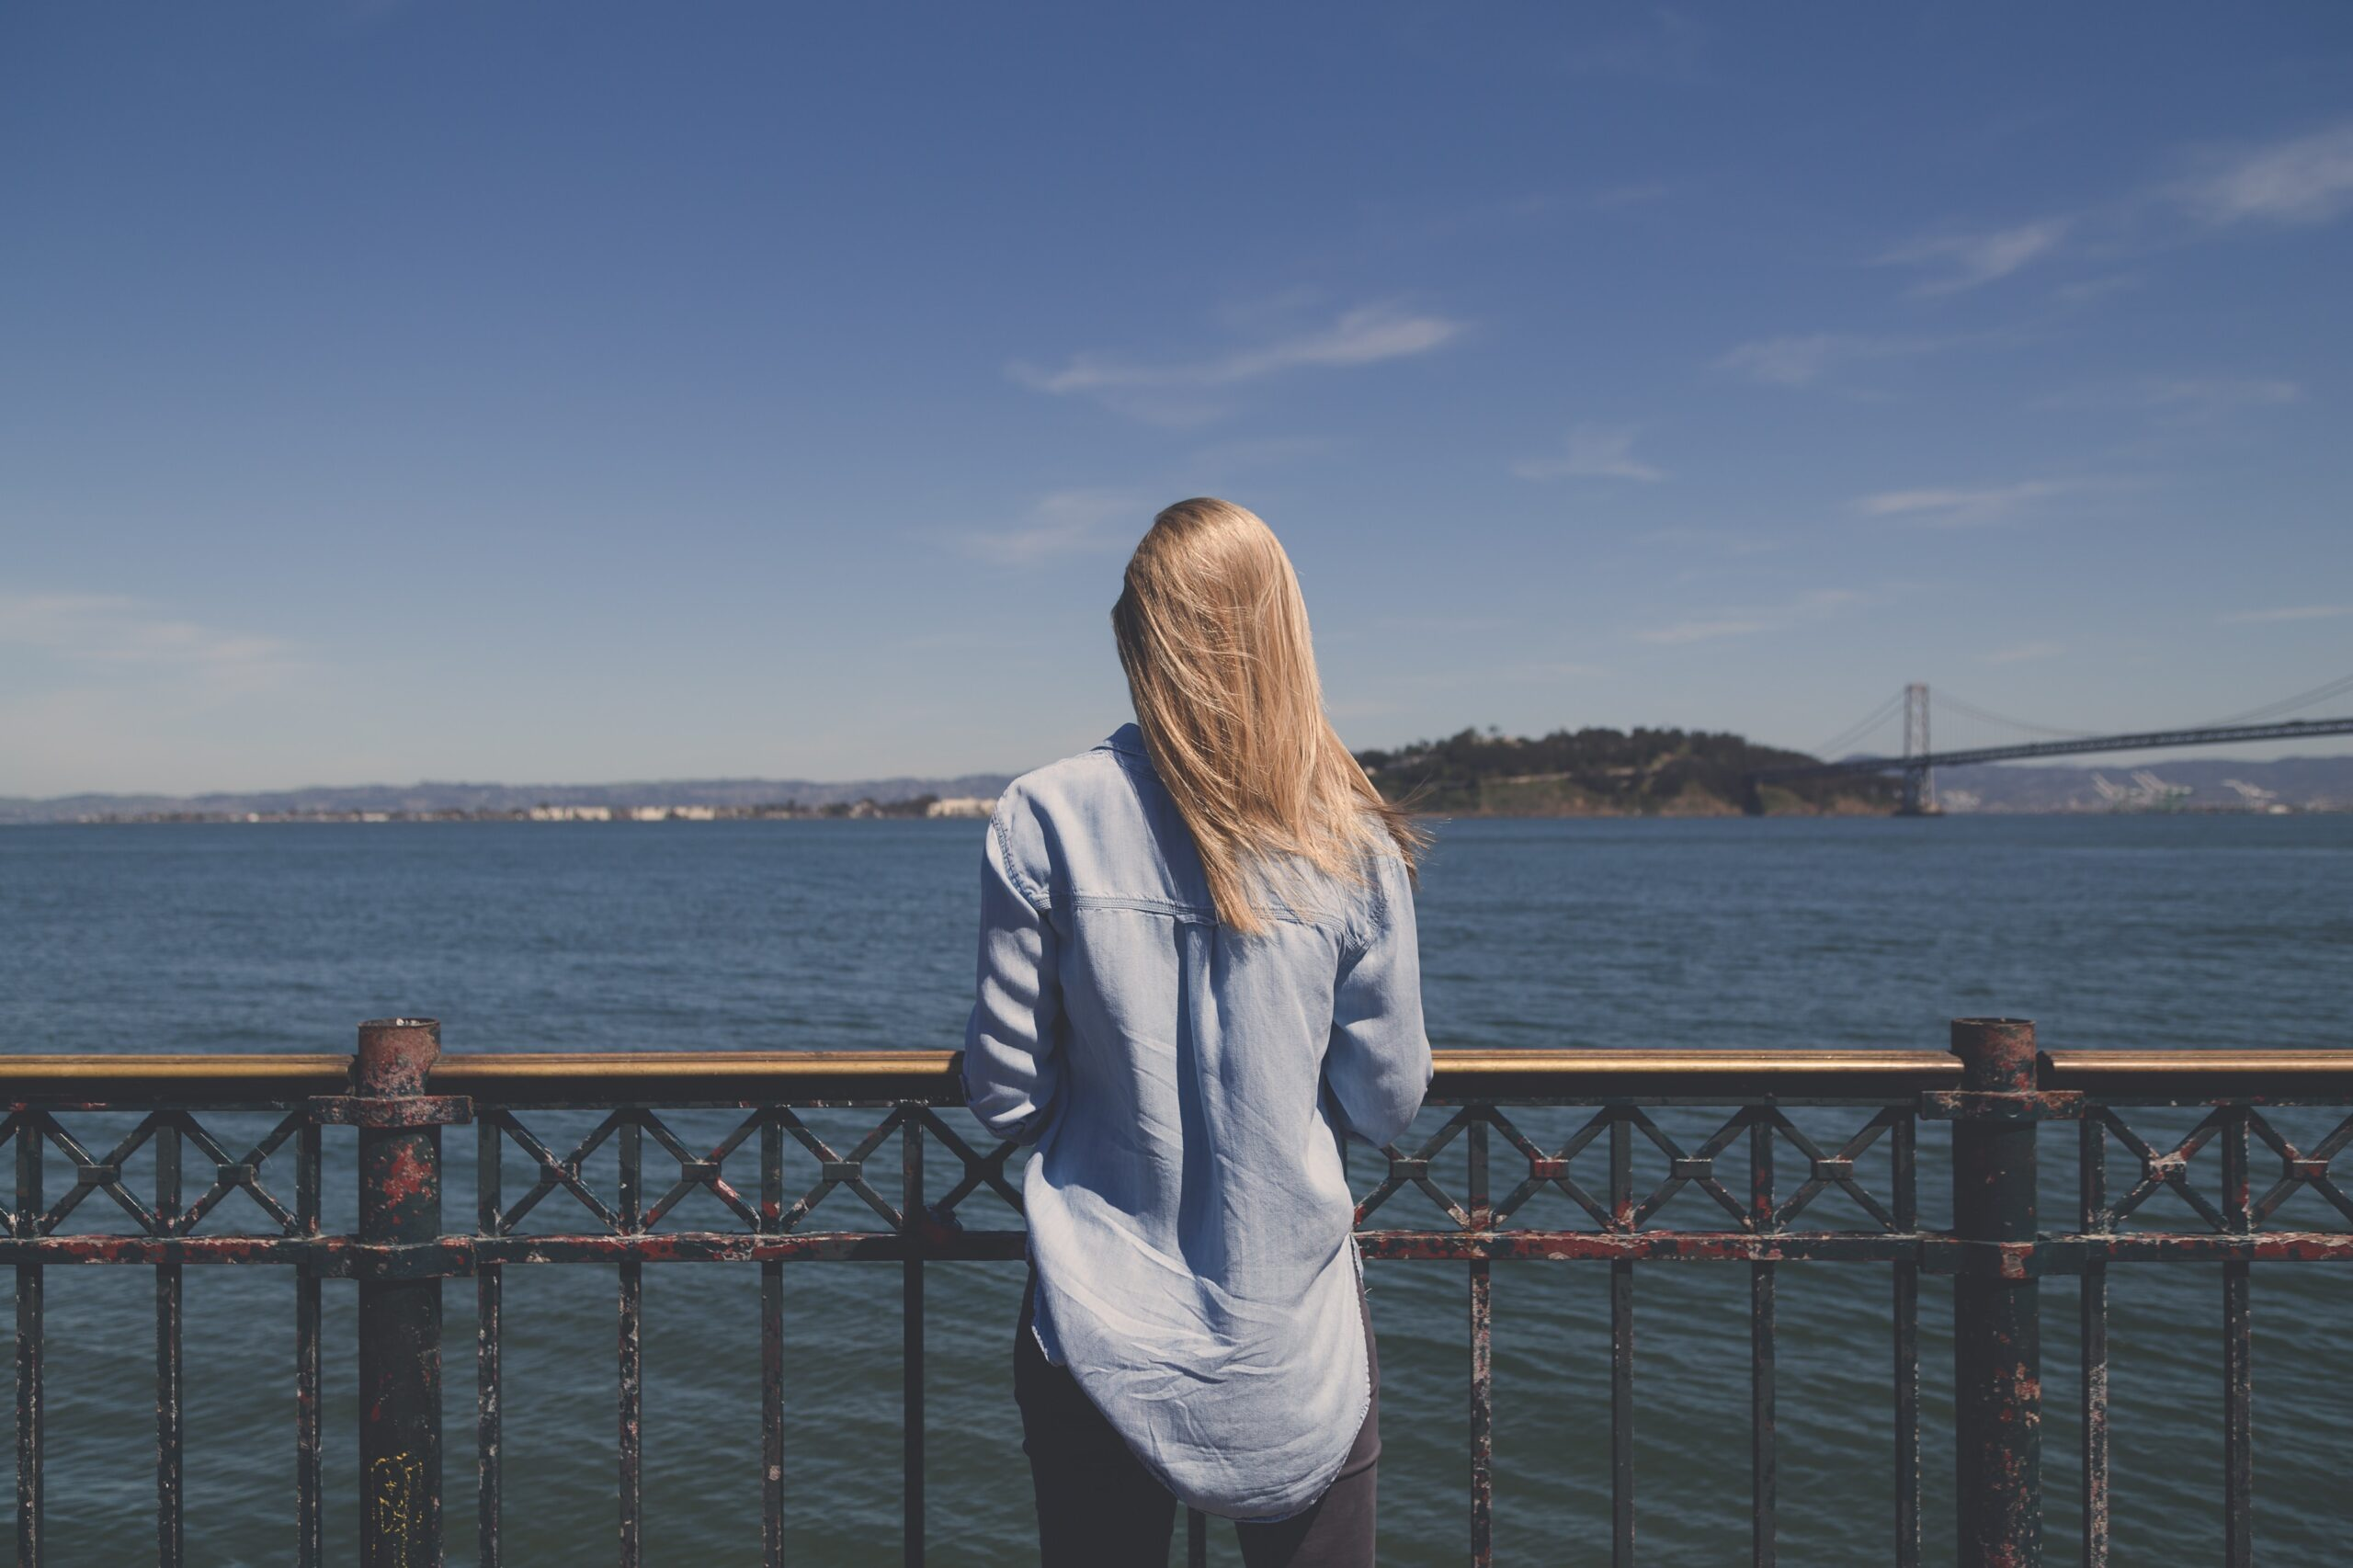 How To Start To Rebuild Life After Divorce